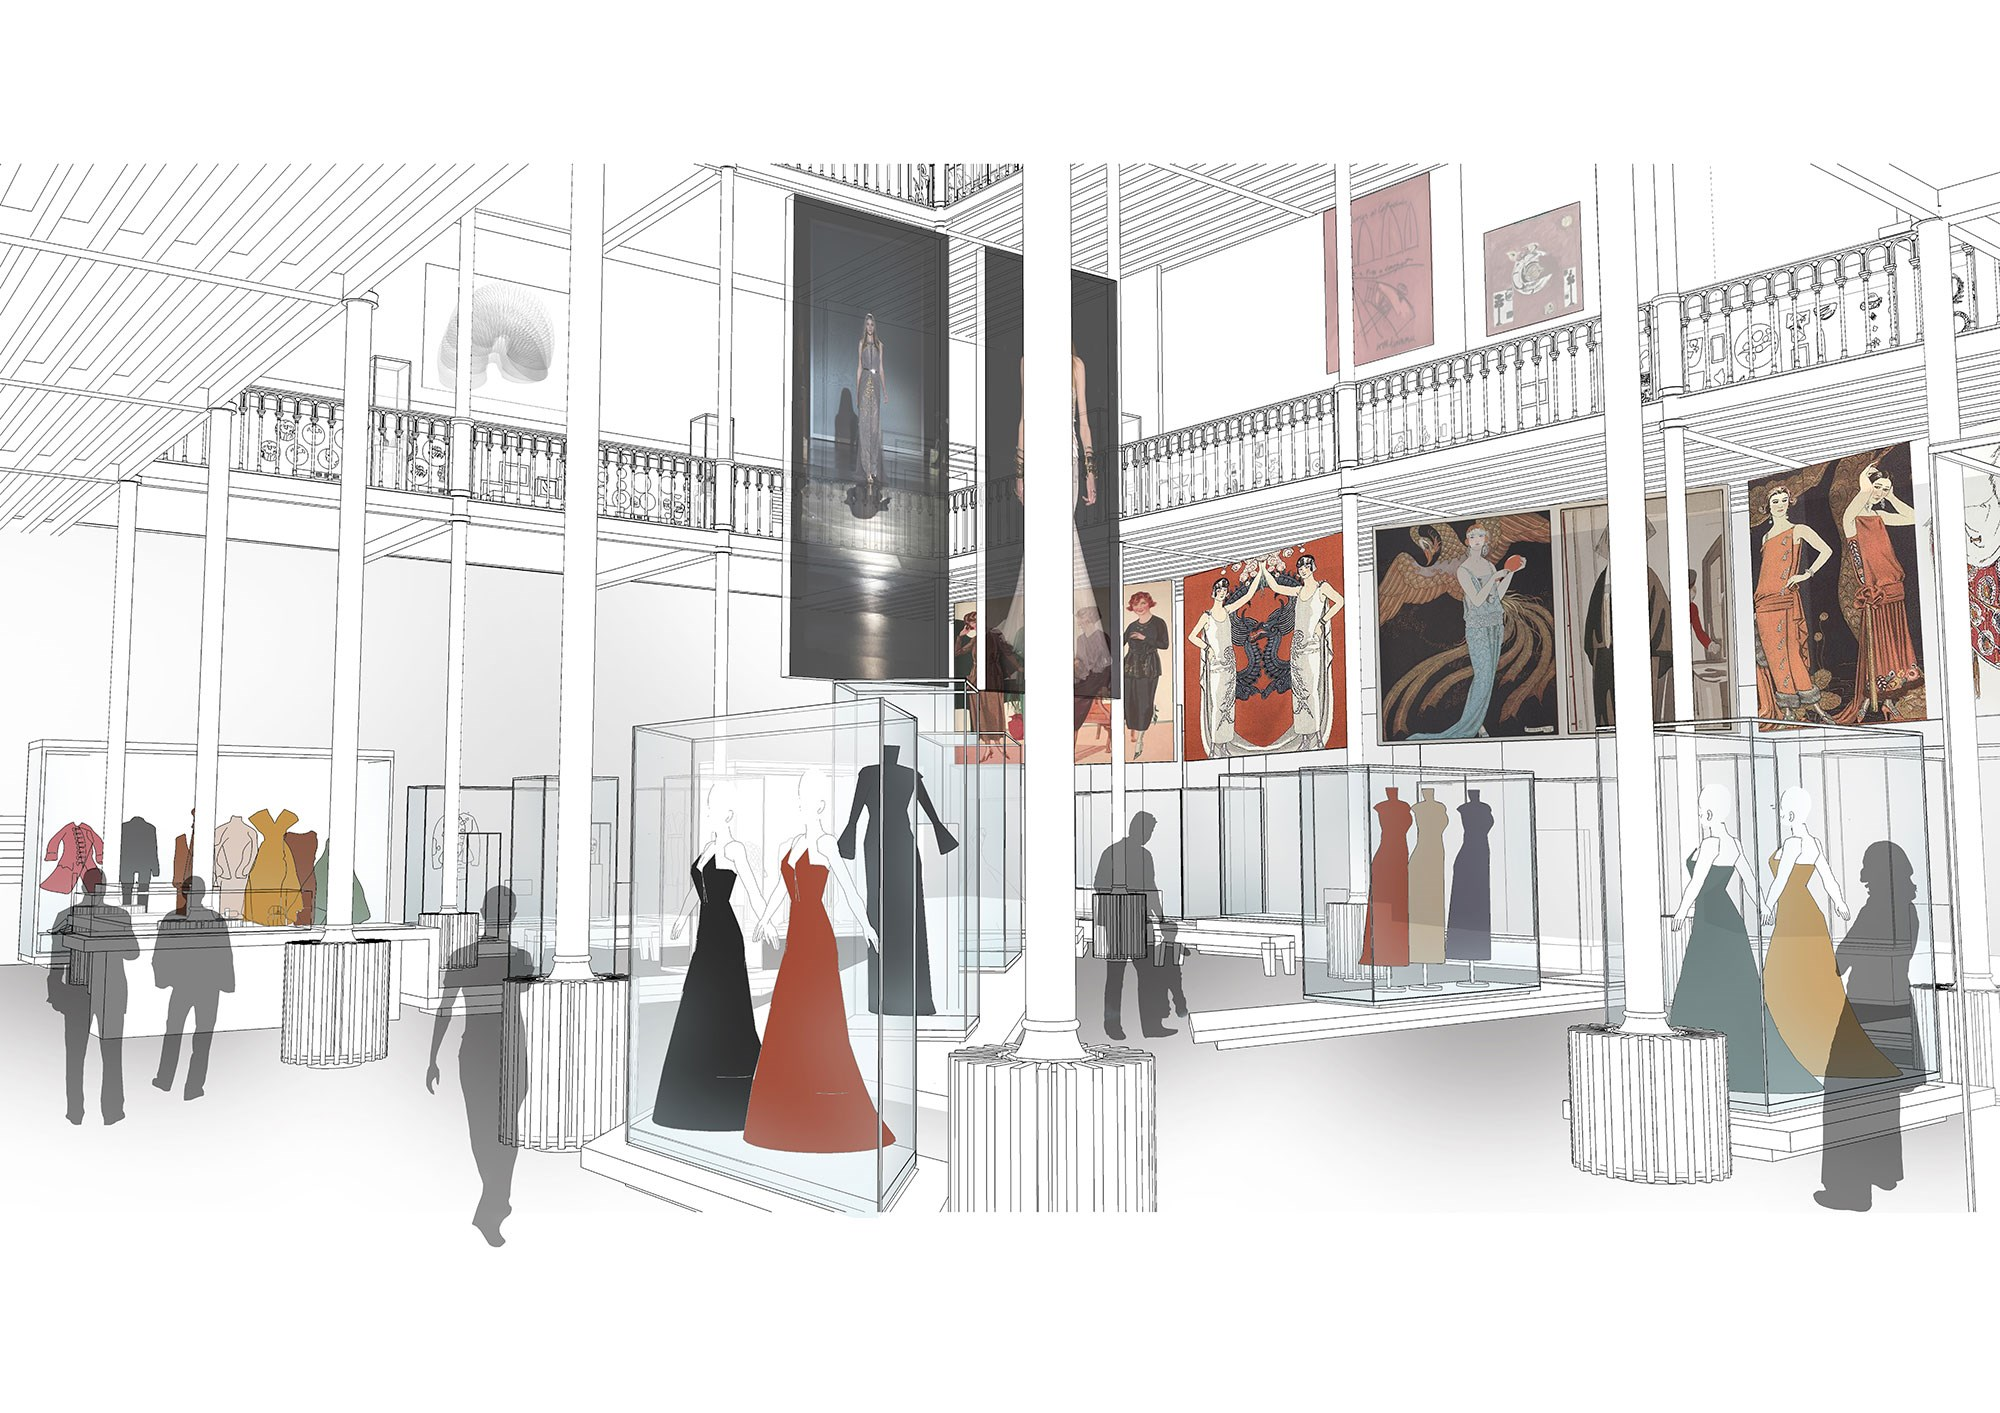 2014 - National Museums Scotland announced the nest stage of the £80 million Masterplan, continuing to restore the much loved Victorian building to its former grandeur. Supporters of the American Foundation enabled the project of creating ten new galleries to get underway.